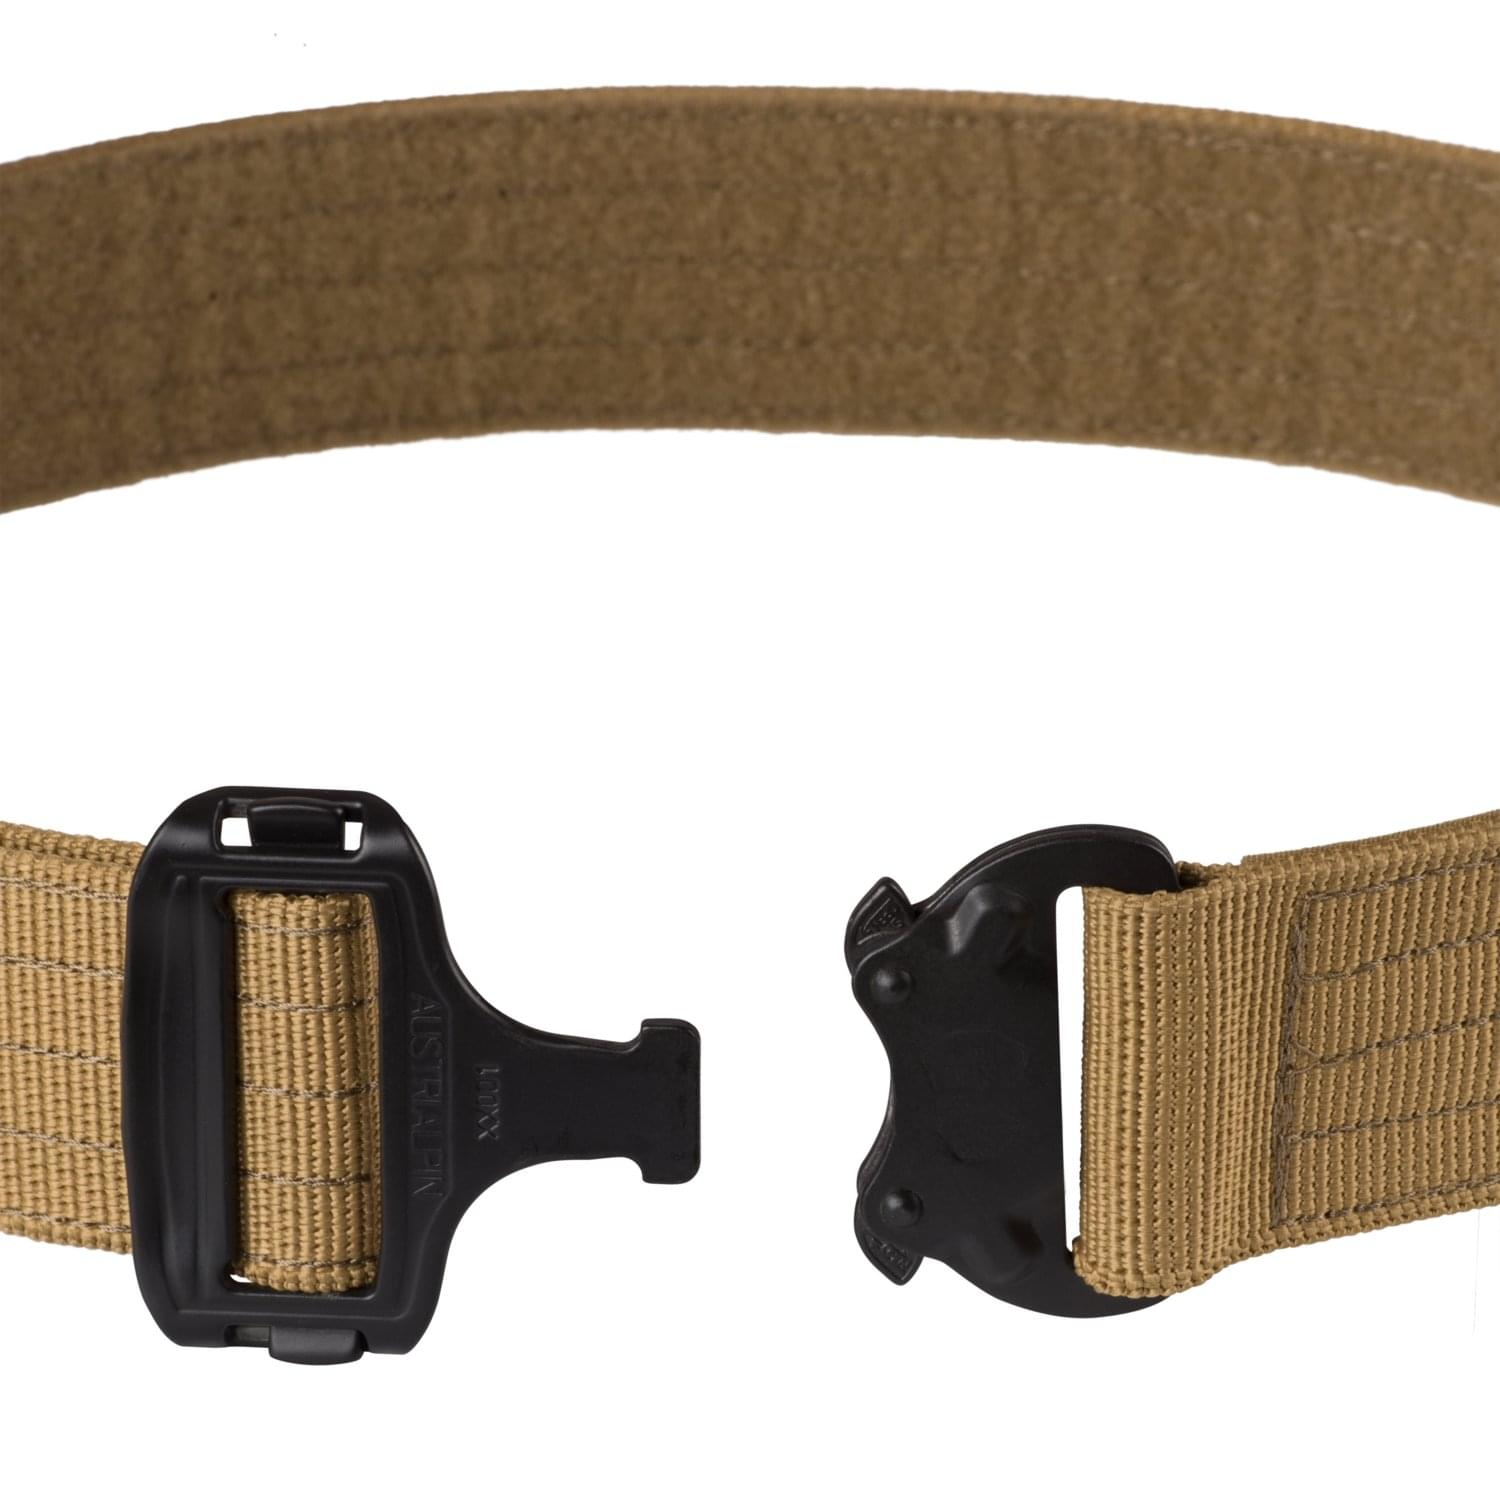 COMPETITION NAUTIC SHOOTING BELT® – Black/Red